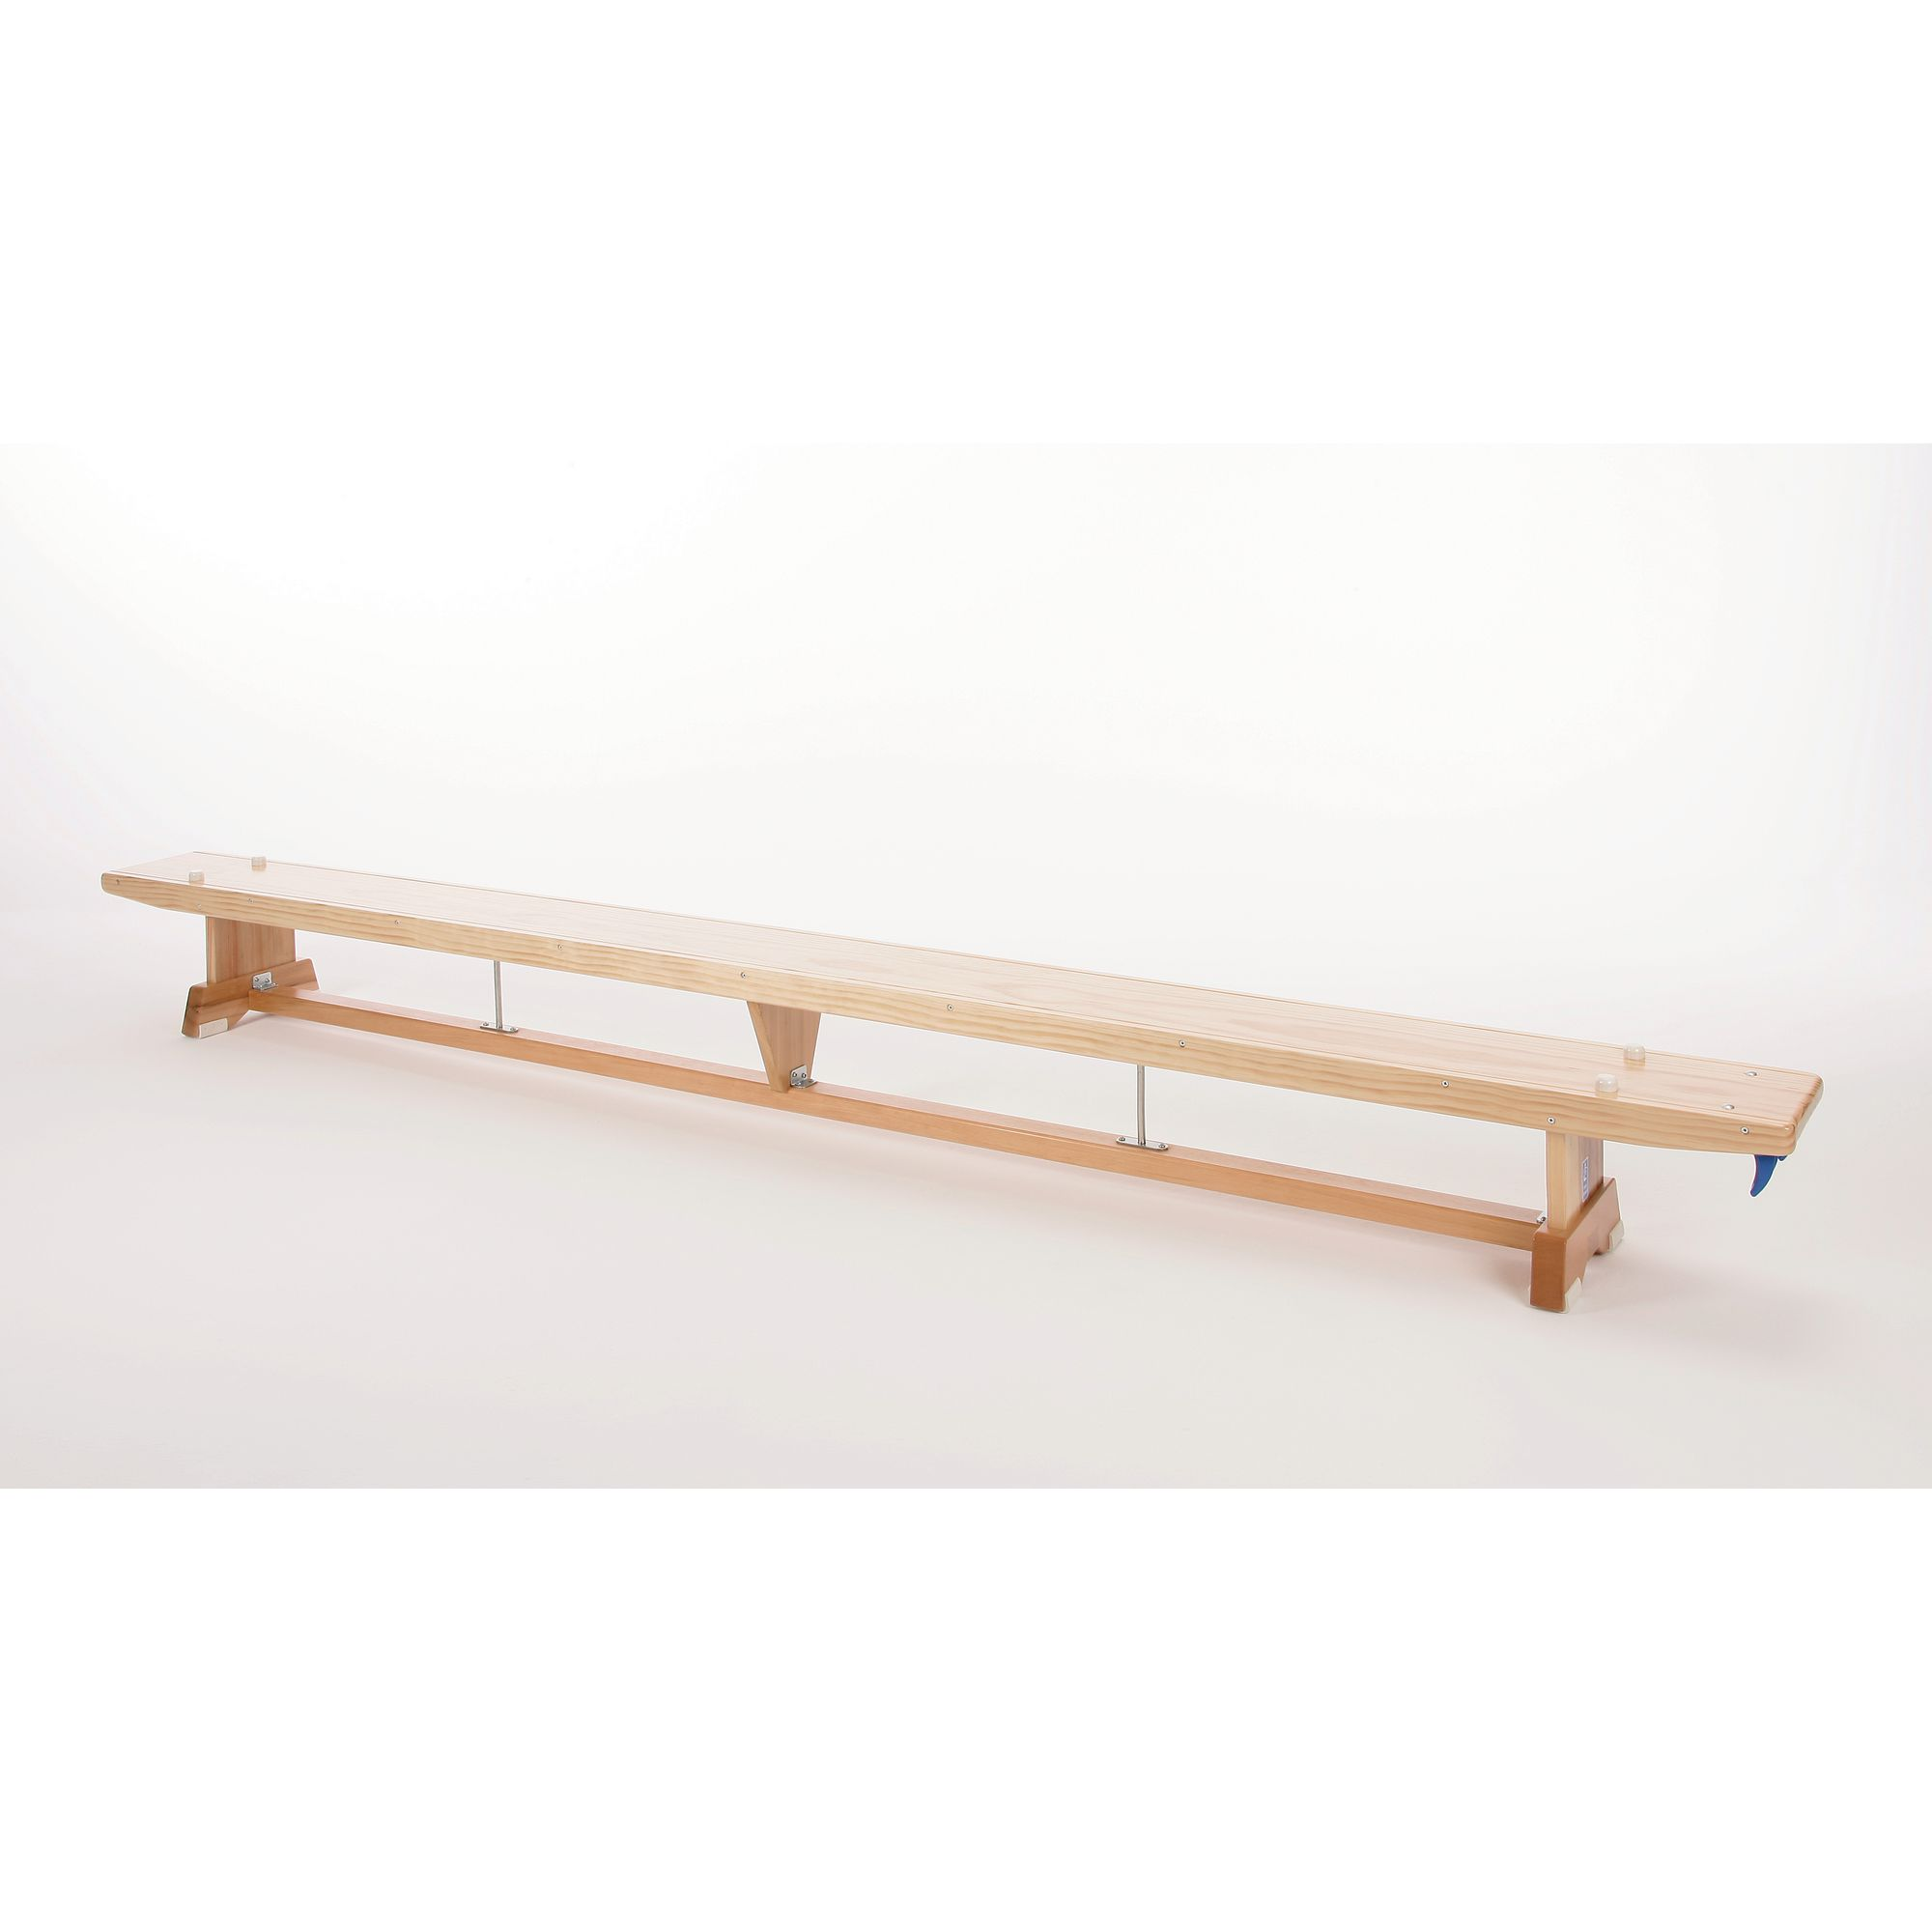 Balance Benches 2.7m Hooks both Ends